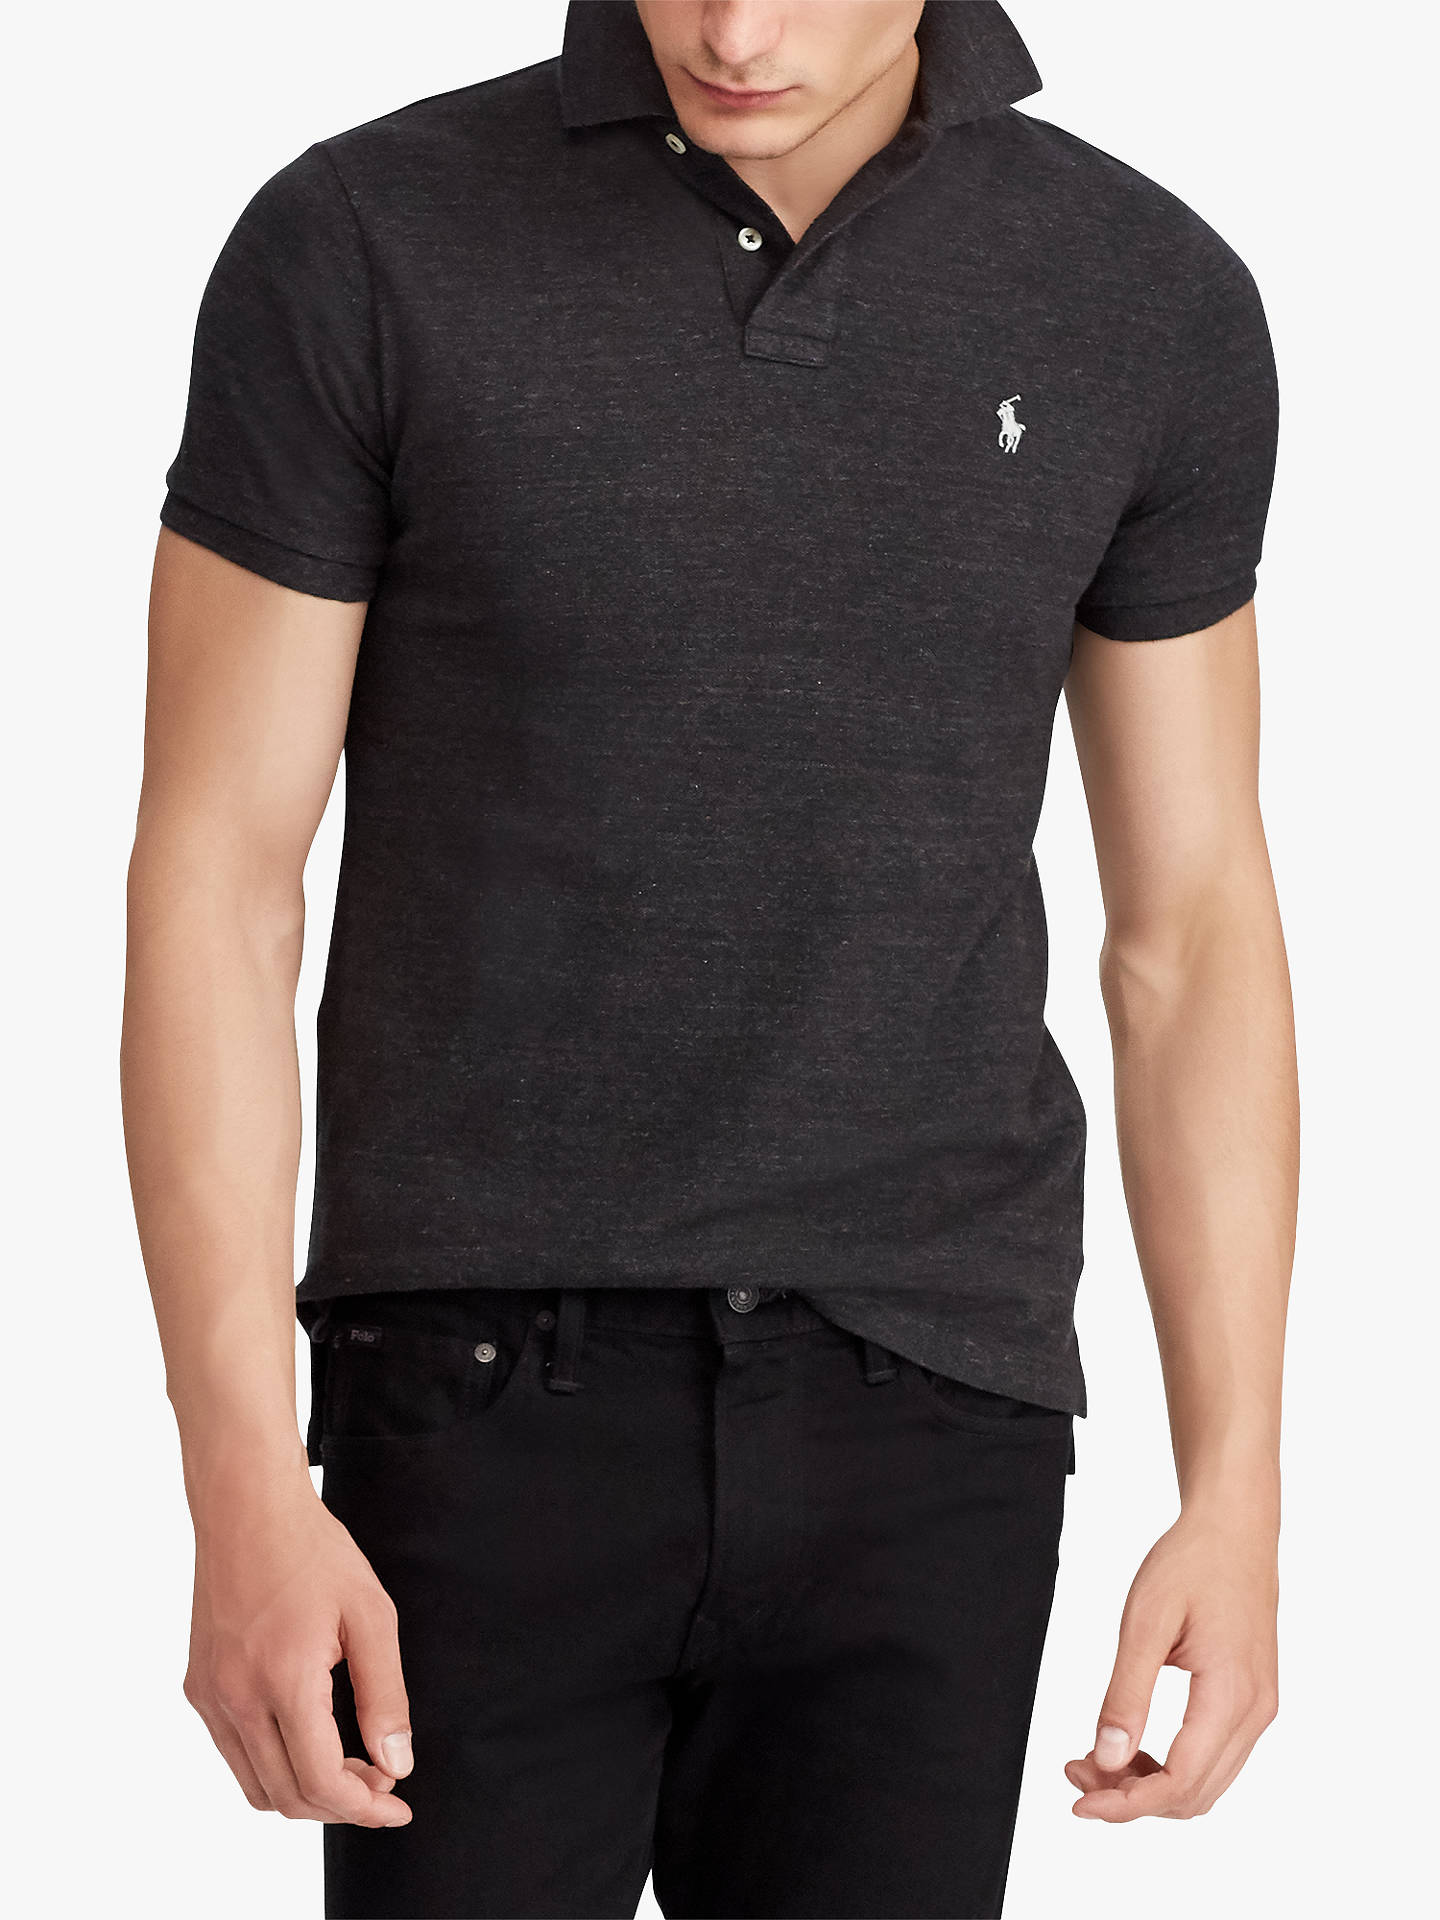 daeff6b5c93e Buy Polo Ralph Lauren Custom Slim Fit Mesh Polo Shirt